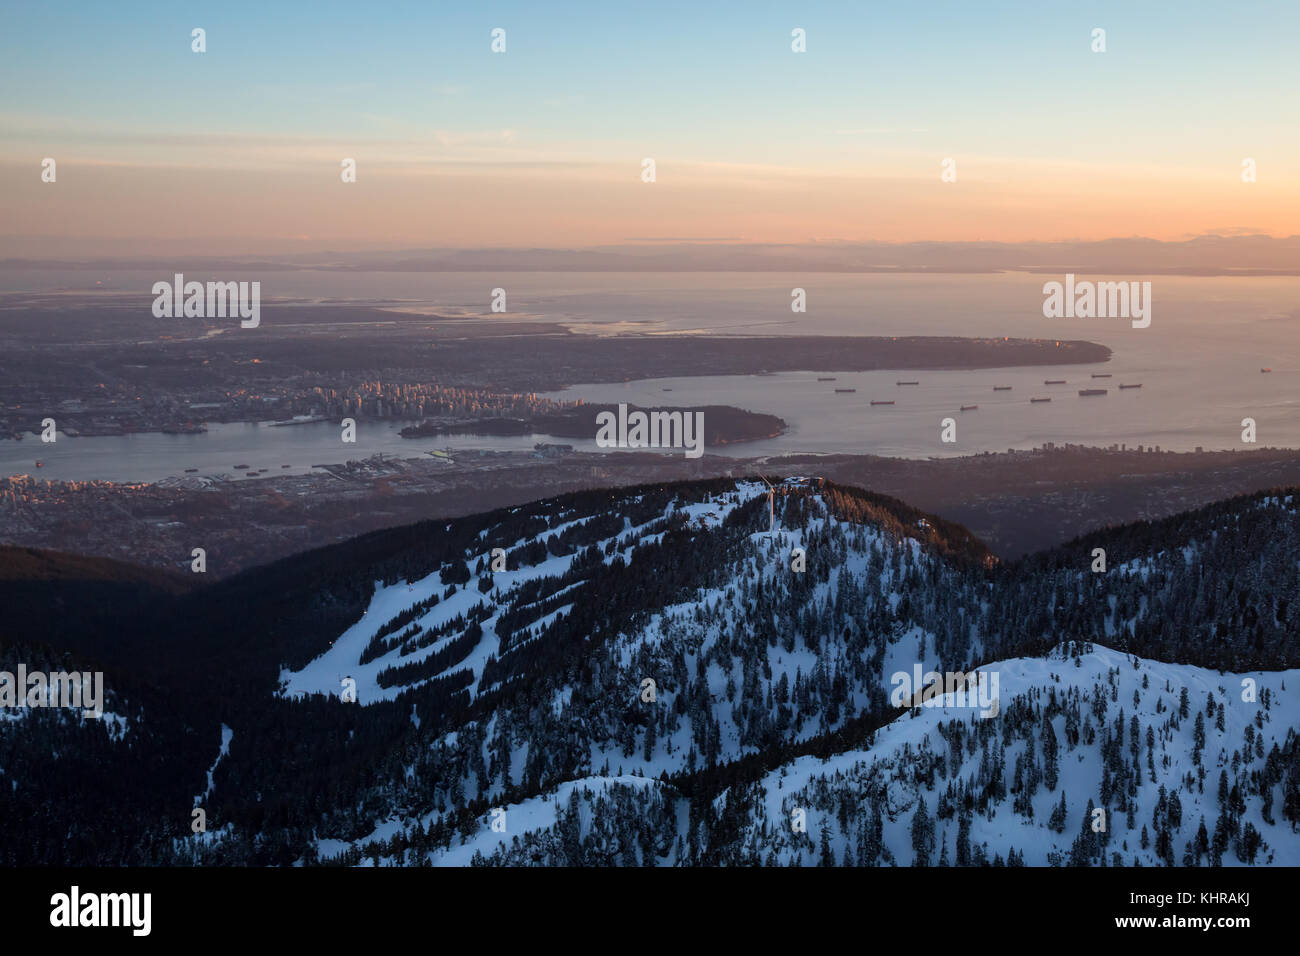 Beautiful Winter Sunset Of Grouse Mountain With Vancouver City In The Background Picture Taken From An Aerial Perspective BC Canada